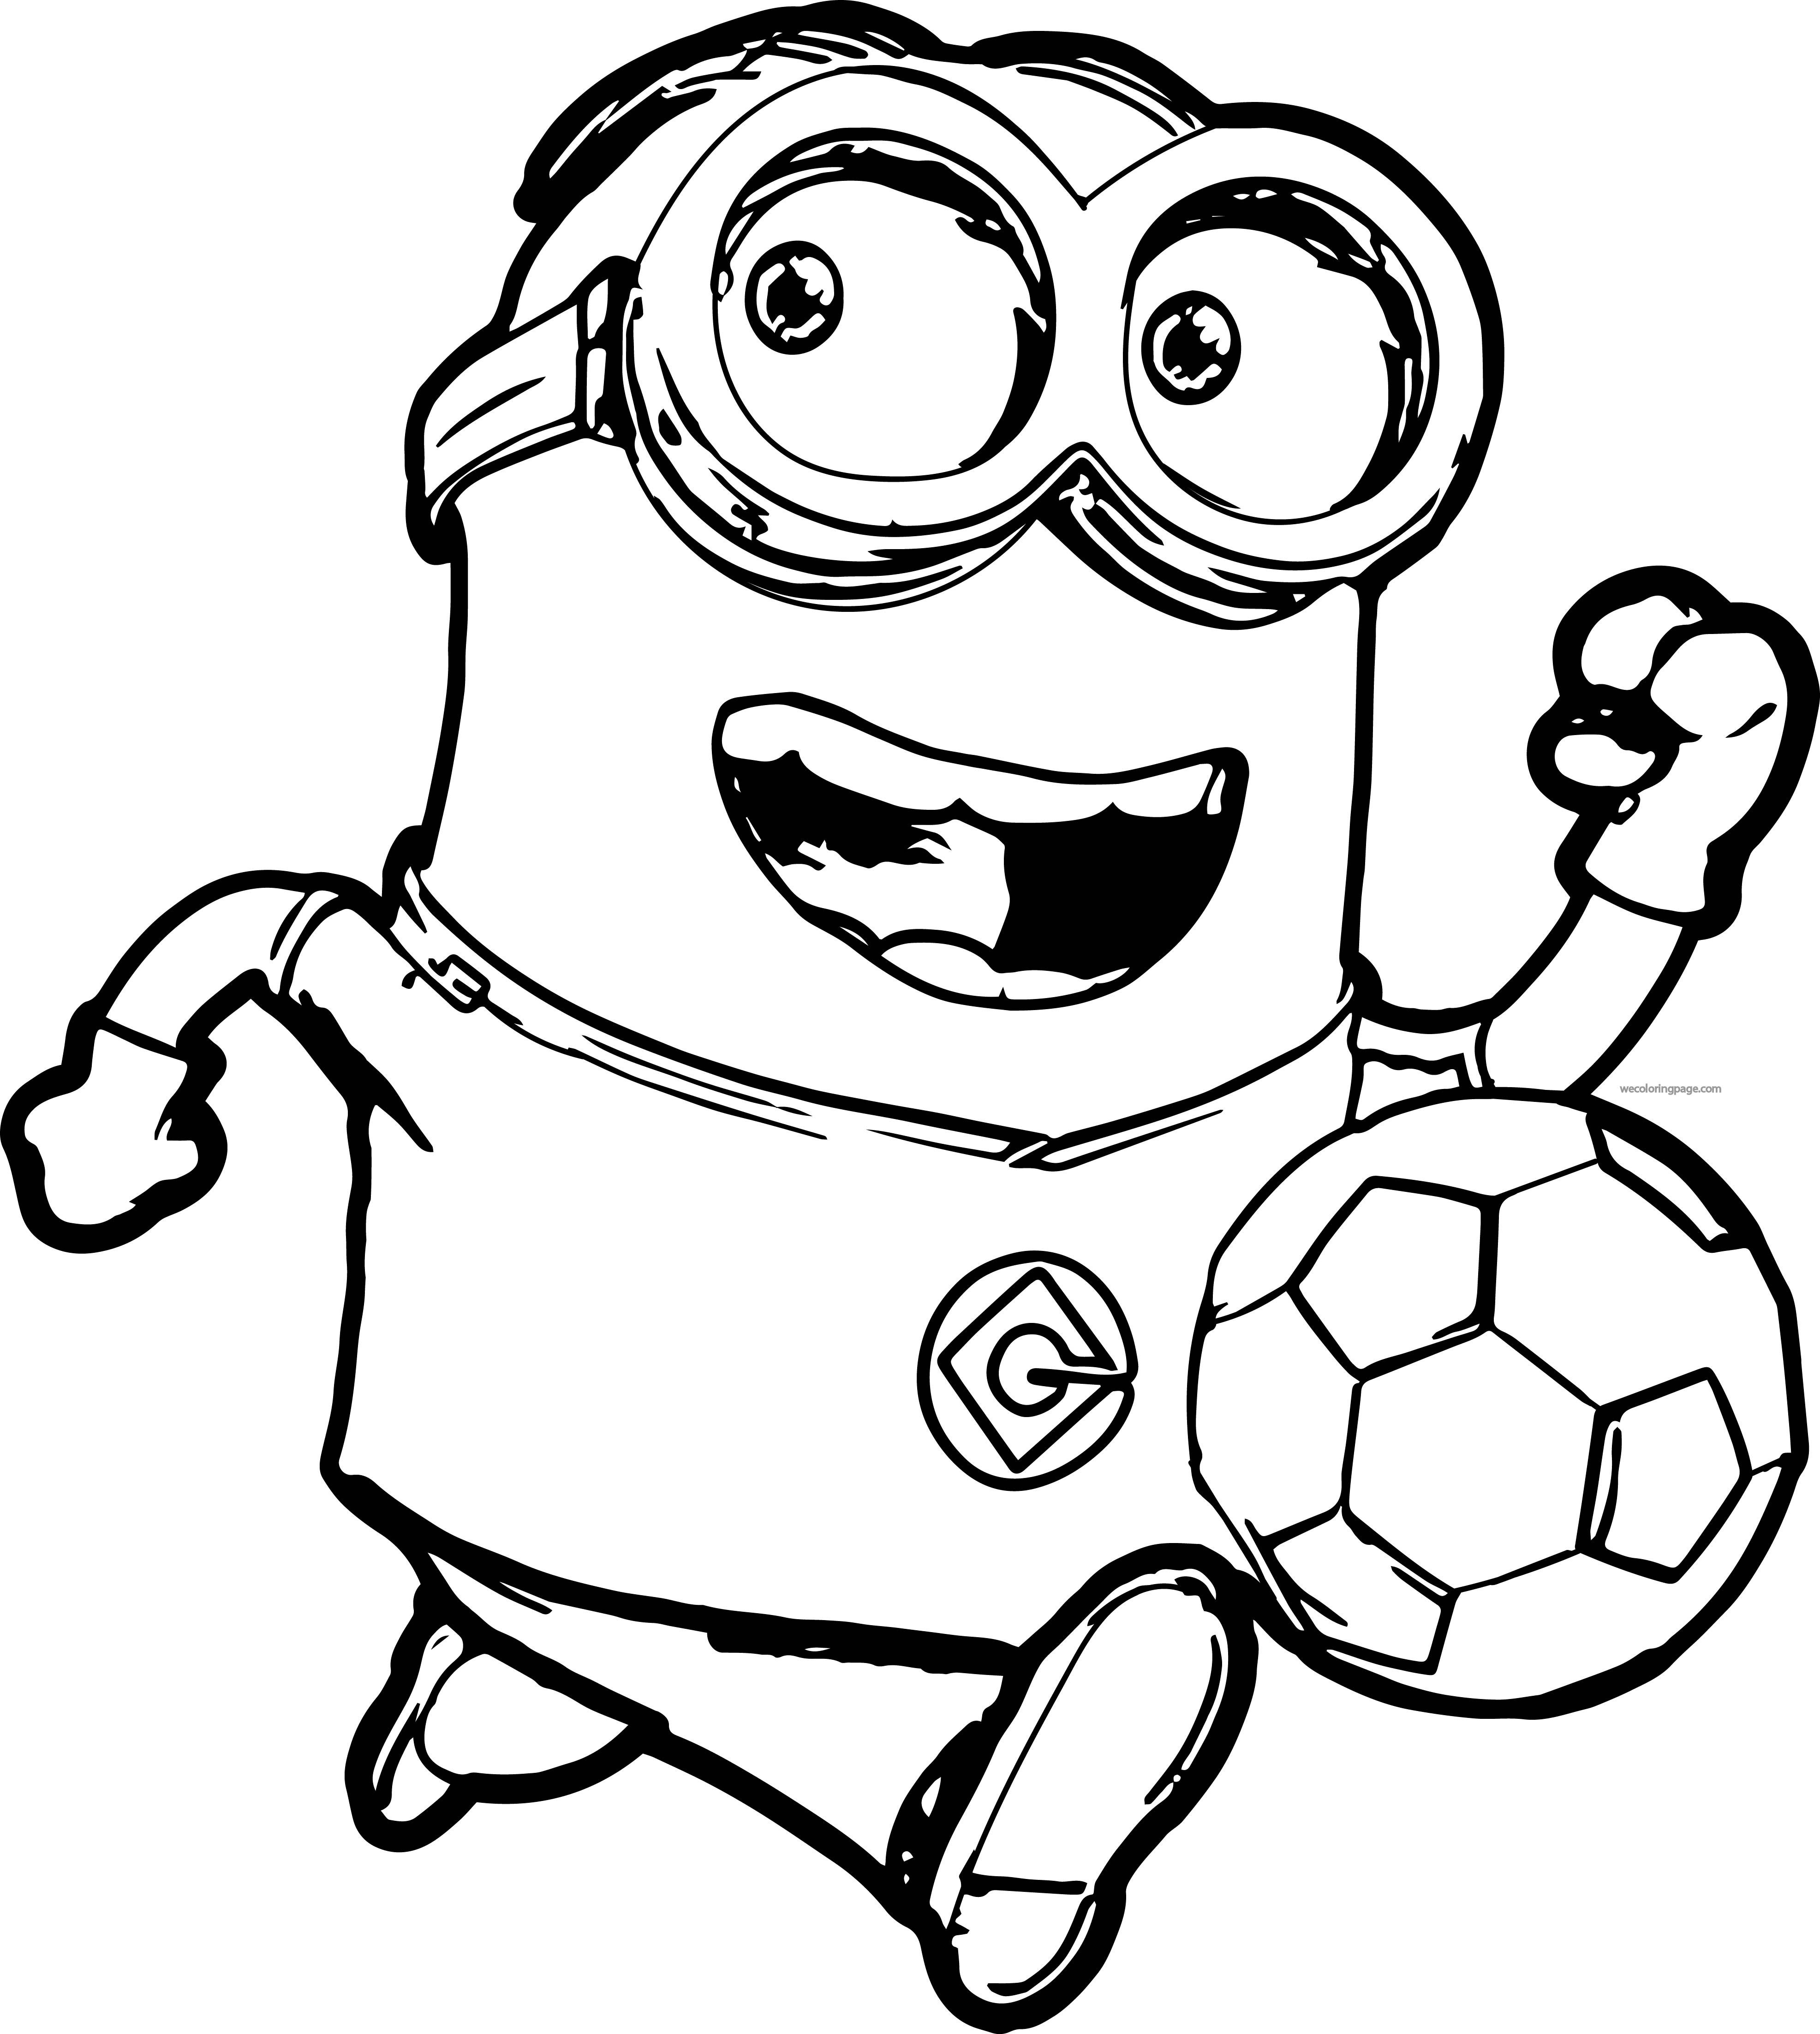 Free Printable Minion Coloring Pages  Gallery 10m - Free For kids